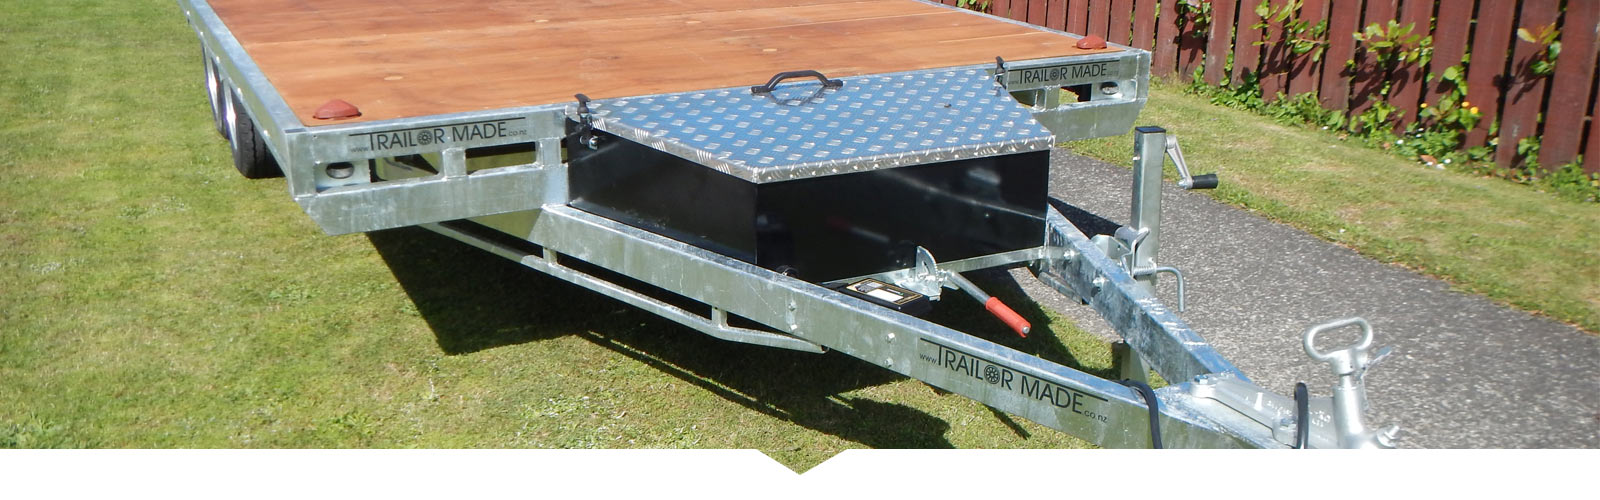 Front mounted galvanised plate tool box for trailers.